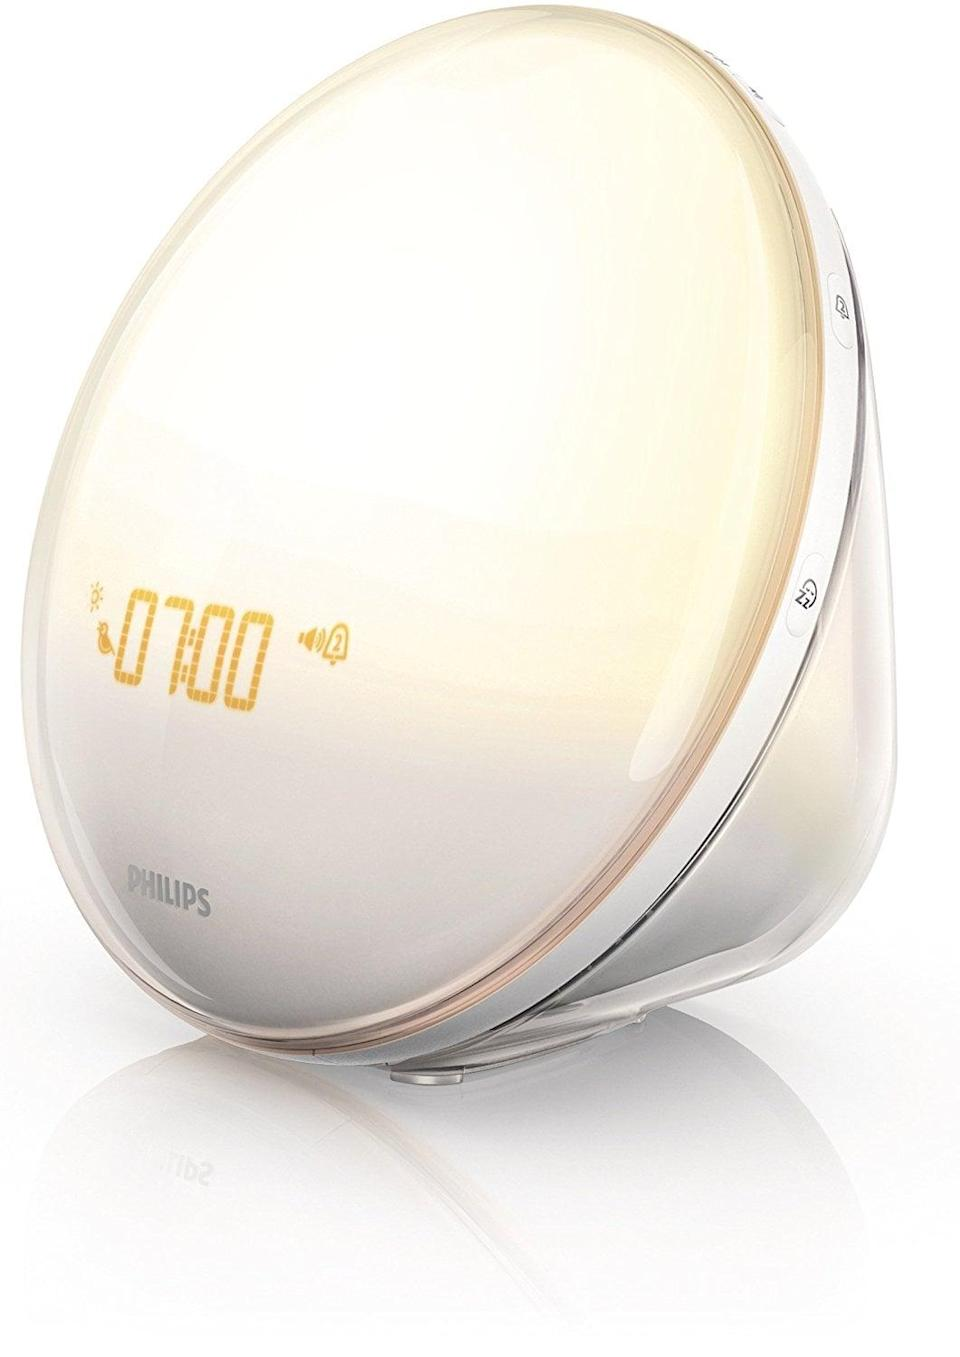 """<p>This <a href=""""https://www.popsugar.com/buy/Philips-Wake-Up-Light-Alarm-Clock-Colored-Sunrise-Simulation-363256?p_name=Philips%20Wake-Up%20Light%20Alarm%20Clock%20with%20Colored%20Sunrise%20Simulation&retailer=amazon.com&pid=363256&price=119&evar1=news%3Aus&evar9=36026397&evar98=https%3A%2F%2Fwww.popsugar.com%2Fnews%2Fphoto-gallery%2F36026397%2Fimage%2F45332655%2FPhilips-Wake-Up-Light-Alarm-Clock-Colored-Sunrise-Simulation&list1=shopping%2Cgifts%2Cgift%20guide%2Cdigital%20life%2Chealthy%20living%20tips%2Ctech%20gifts%2Cmornings%2Cgifts%20for%20men%2Cmorning%20routines&prop13=api&pdata=1"""" class=""""link rapid-noclick-resp"""" rel=""""nofollow noopener"""" target=""""_blank"""" data-ylk=""""slk:Philips Wake-Up Light Alarm Clock with Colored Sunrise Simulation"""">Philips Wake-Up Light Alarm Clock with Colored Sunrise Simulation</a> ($119) lets you wake up with the sun, even if it's raining.</p>"""